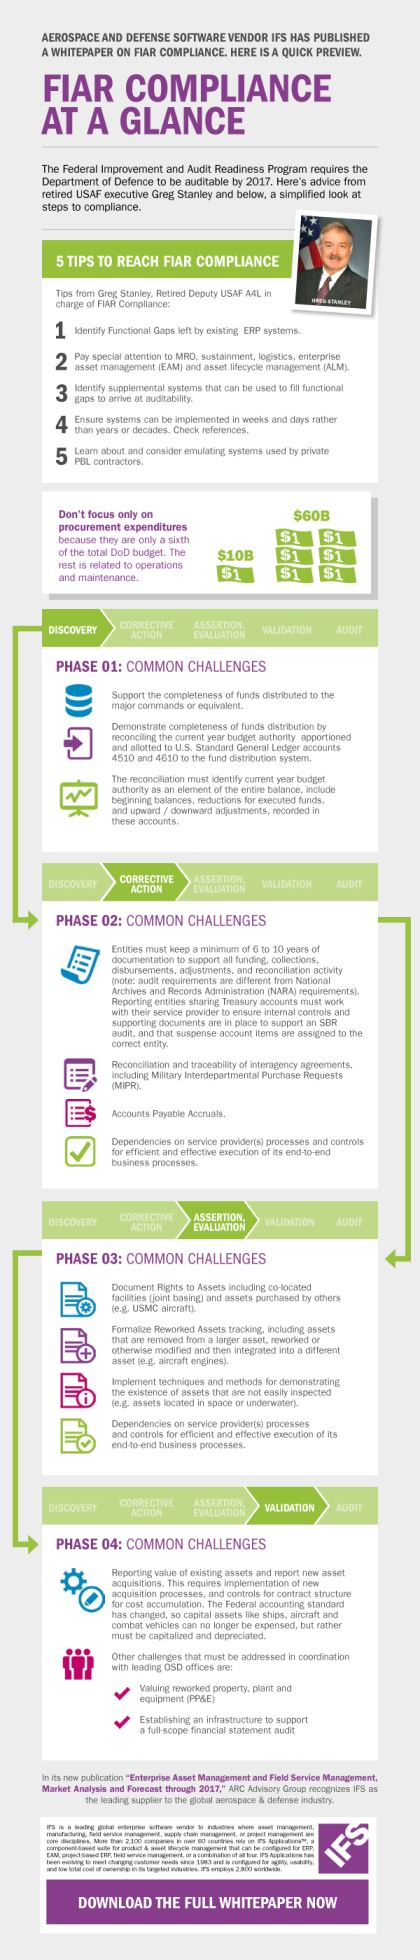 FIAR compliance infographic